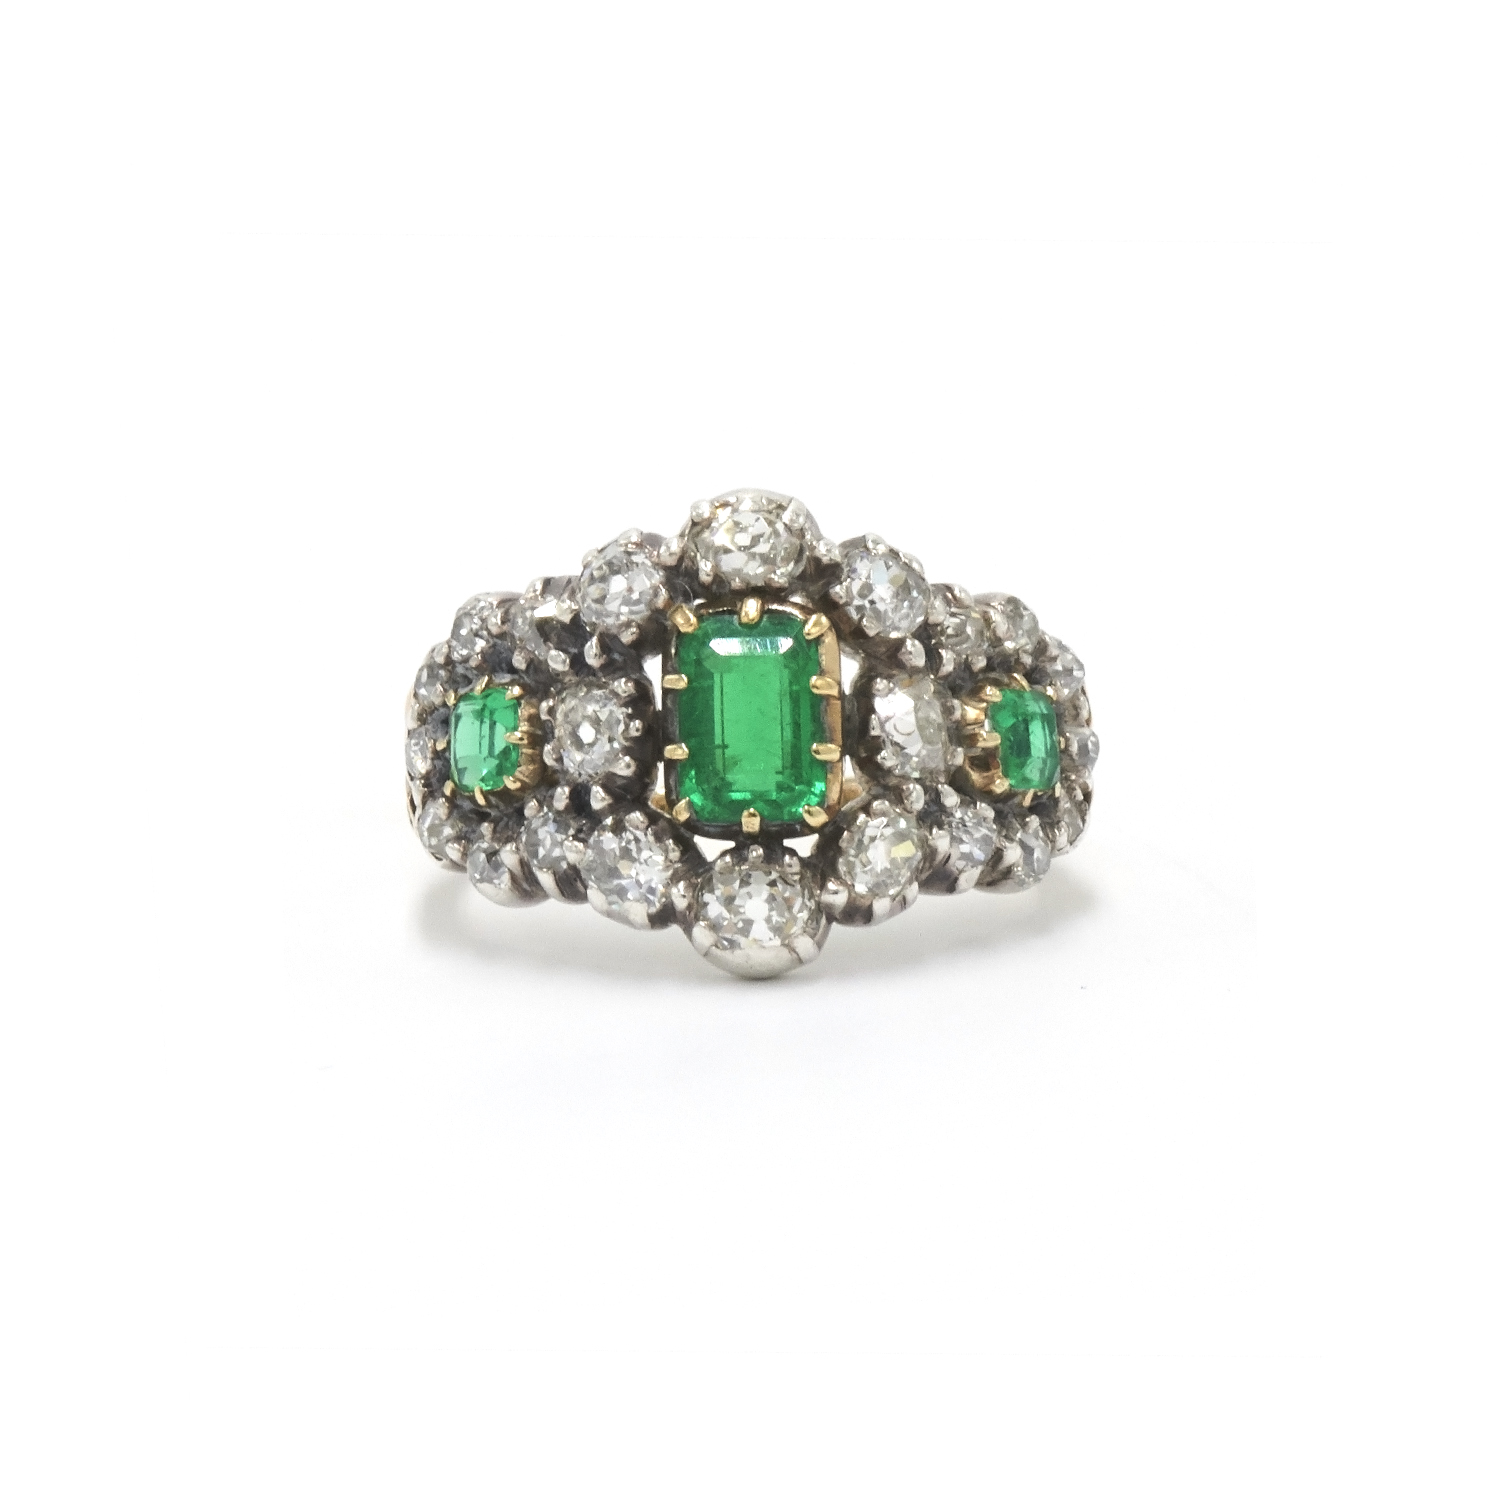 Antique Emerald and Diamond Ring Style R-36782-FL-0-0